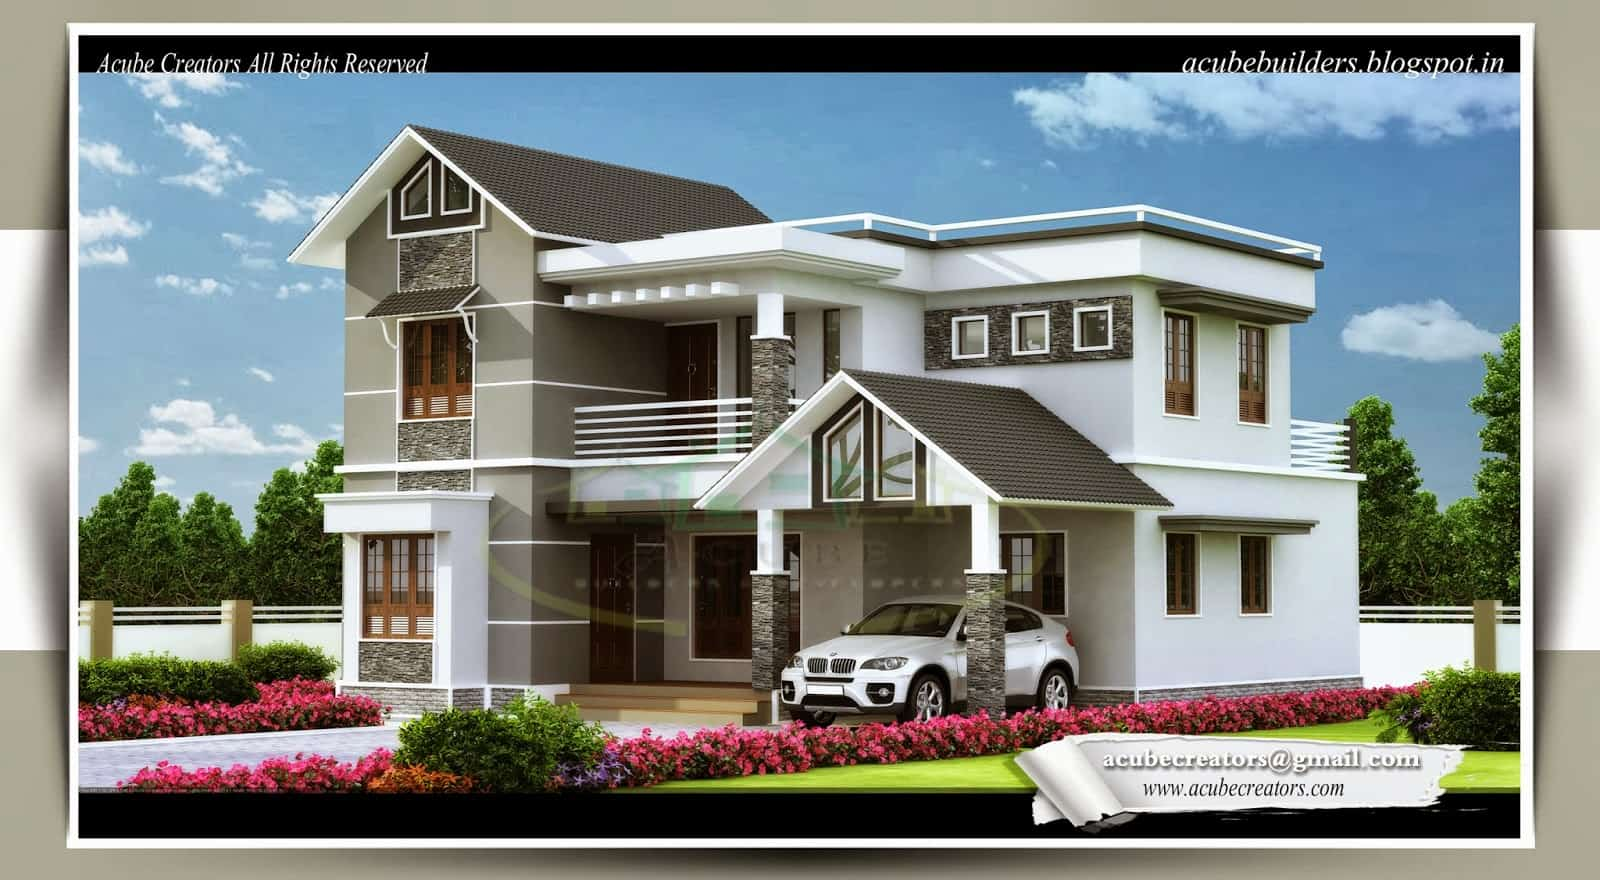 Kerala home design photos How to design a house